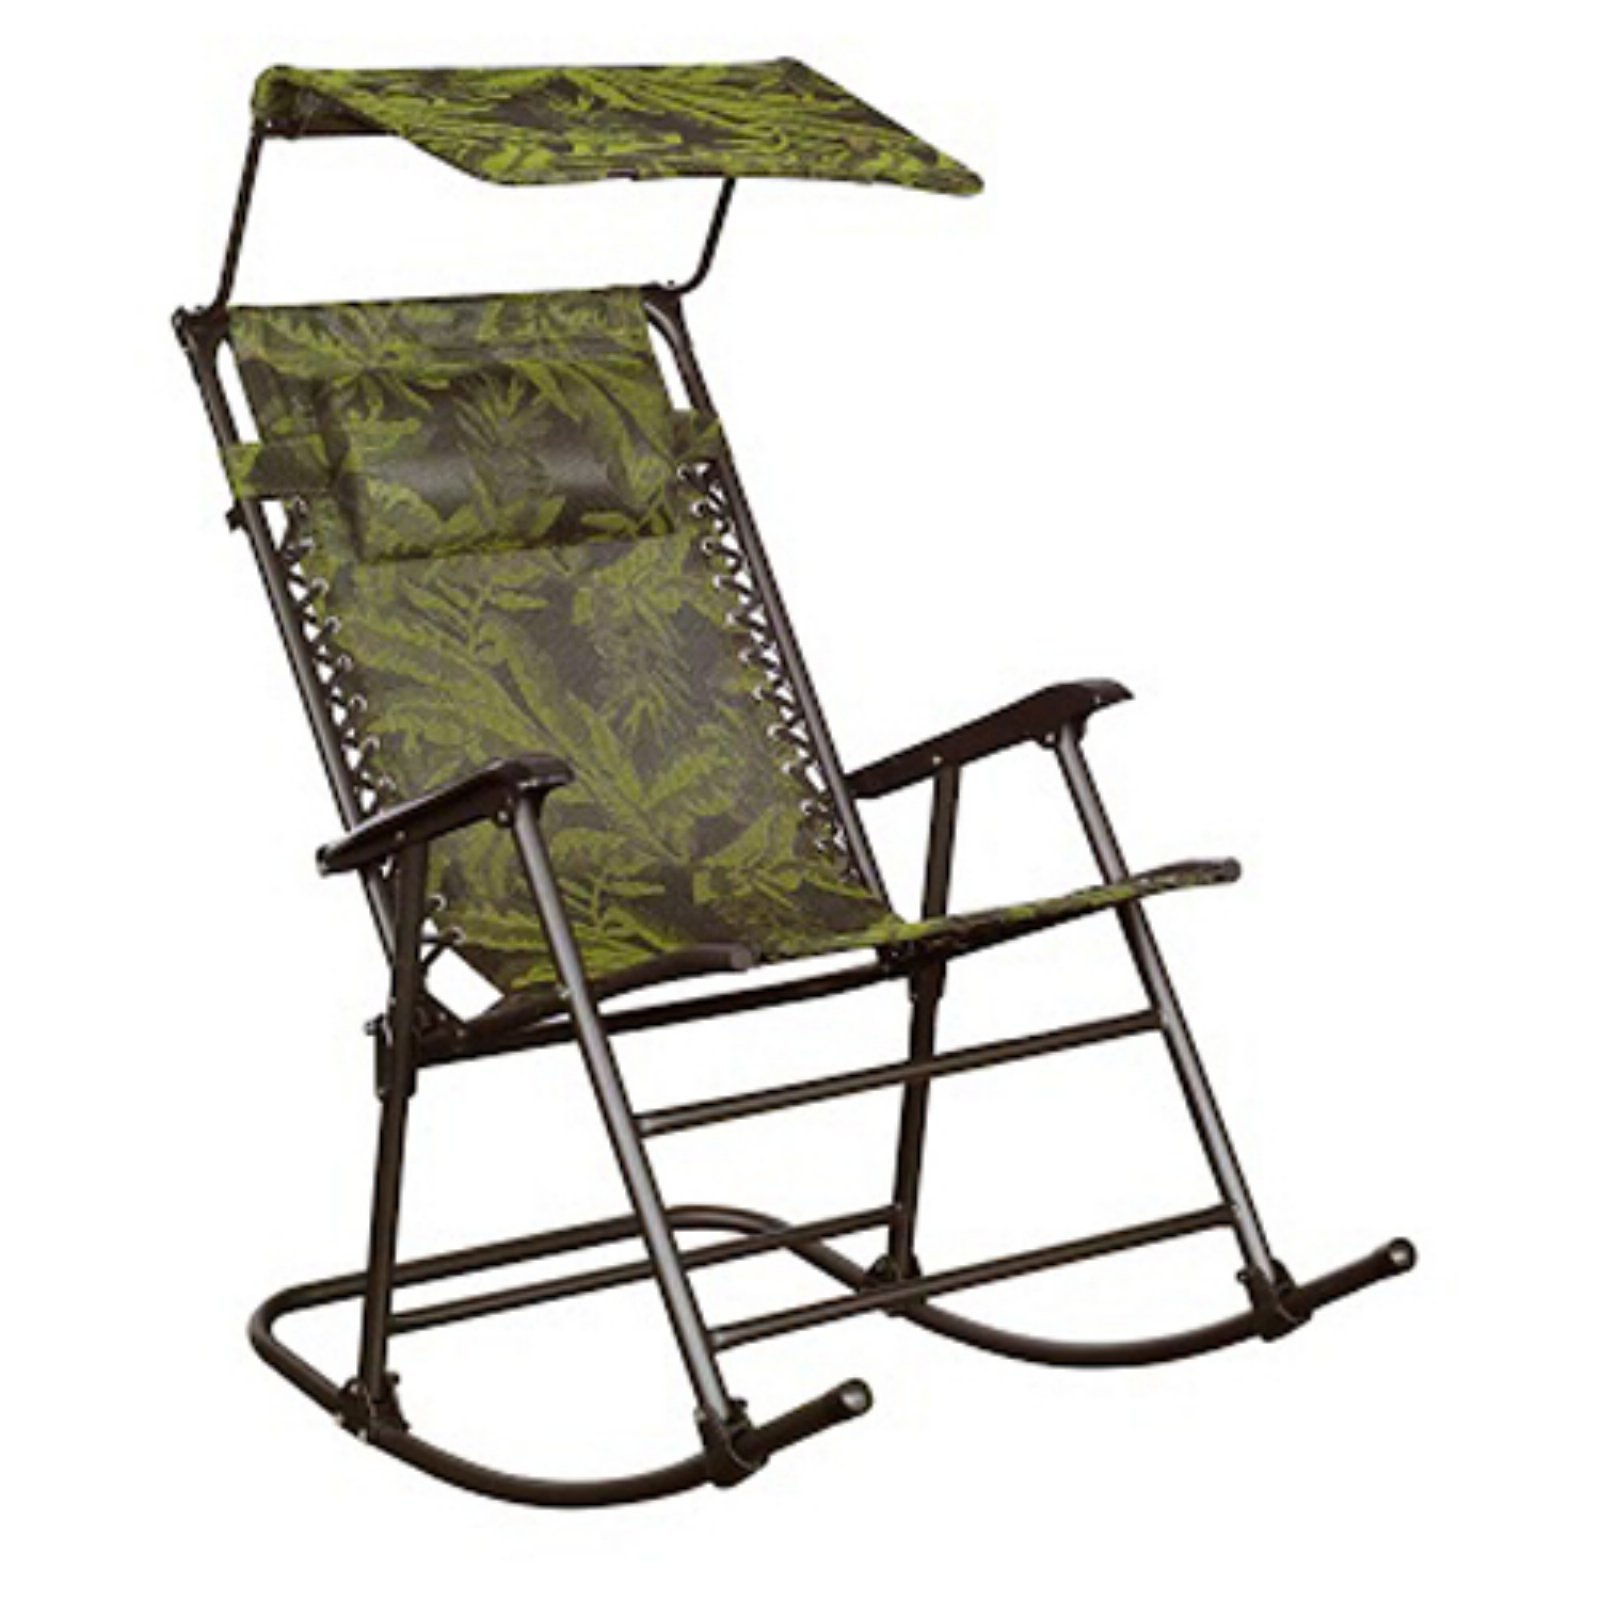 alabama rocking chair oversized patio chairs deluxe with canopy walmart